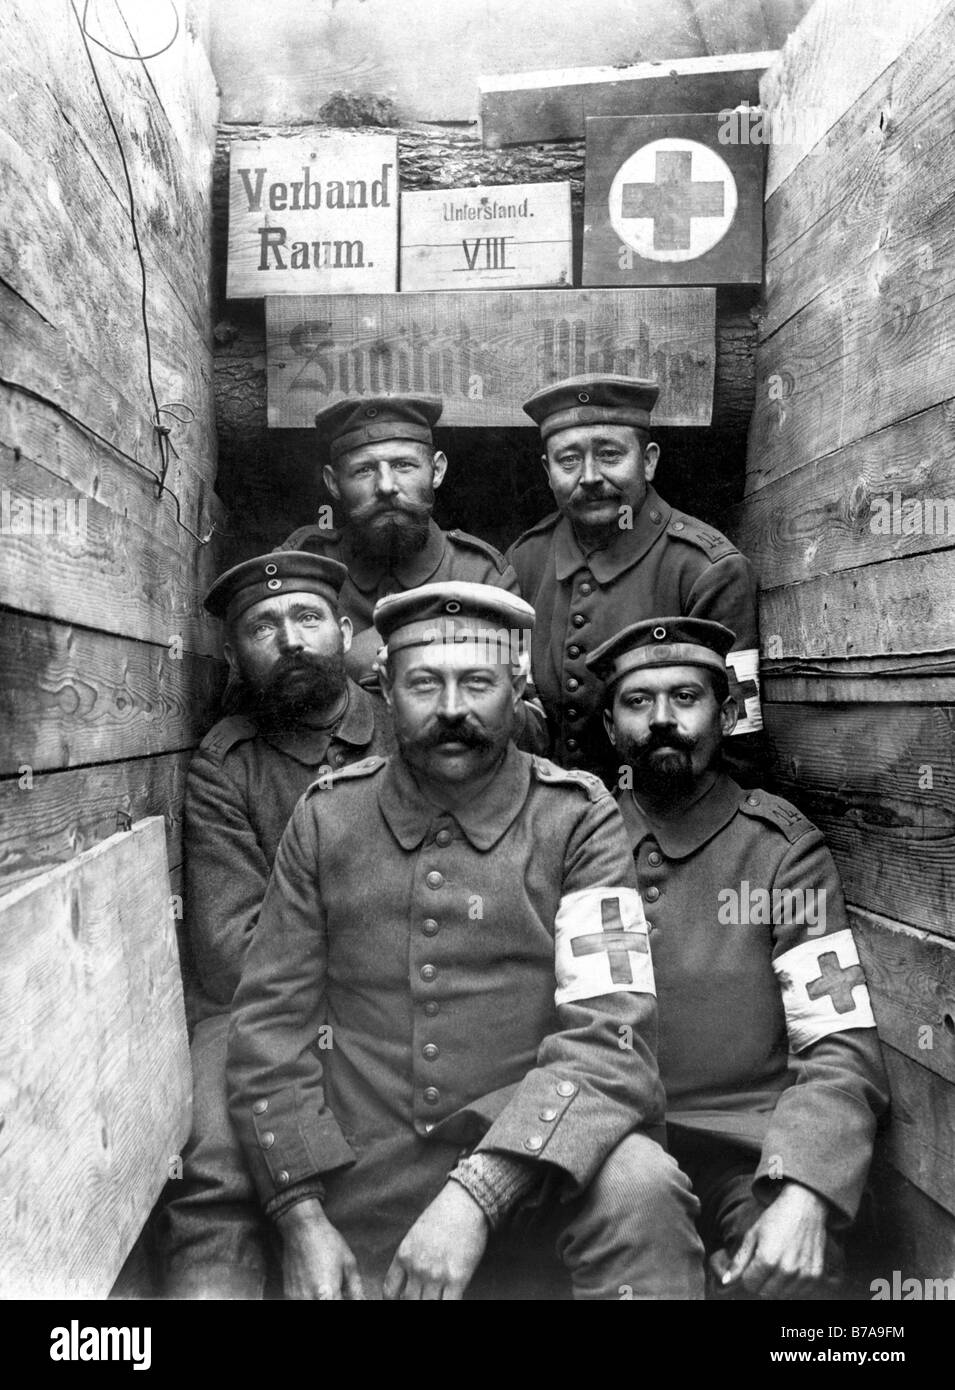 Historic photo, First World War, emergency medical technicians in the trench - Stock Image